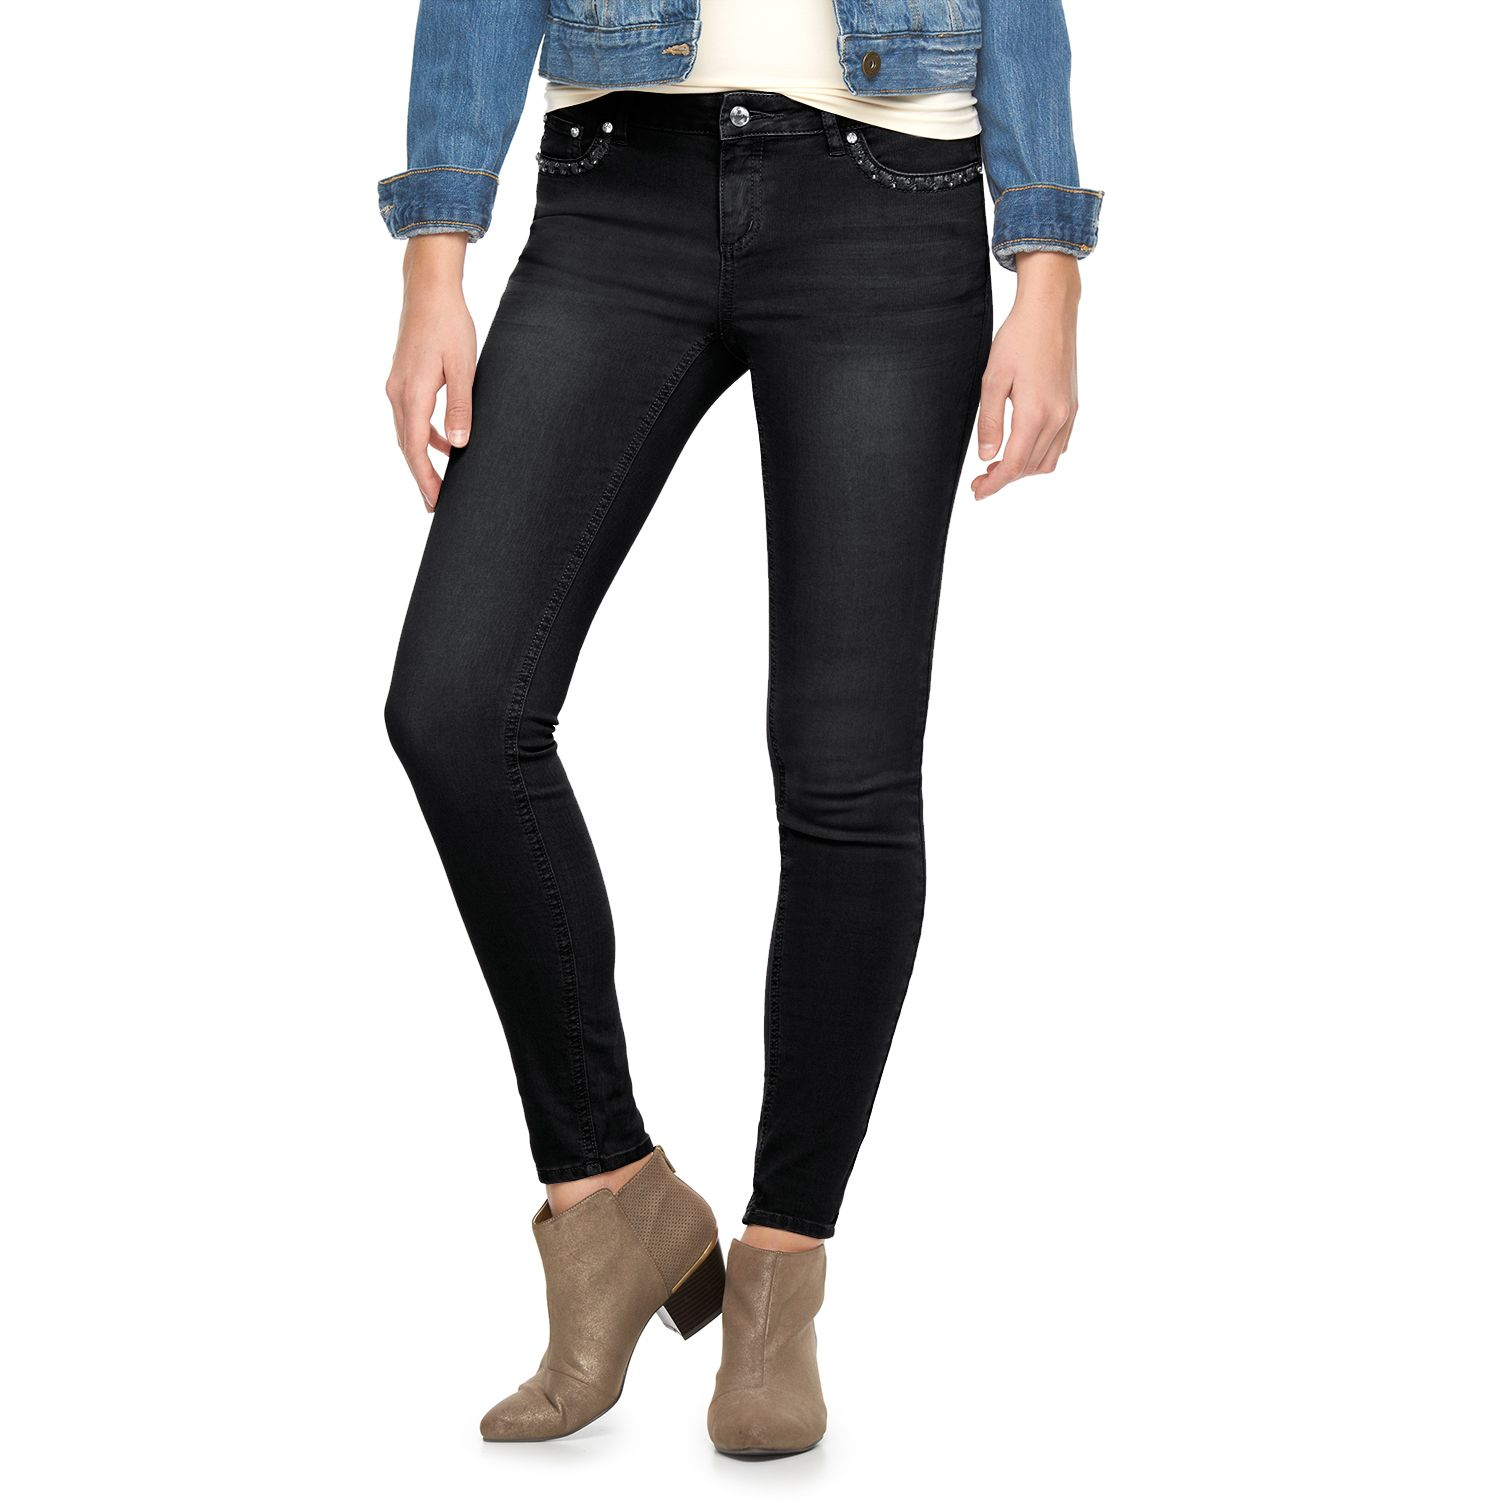 Juniors Candies? Studded Skinny Jeans